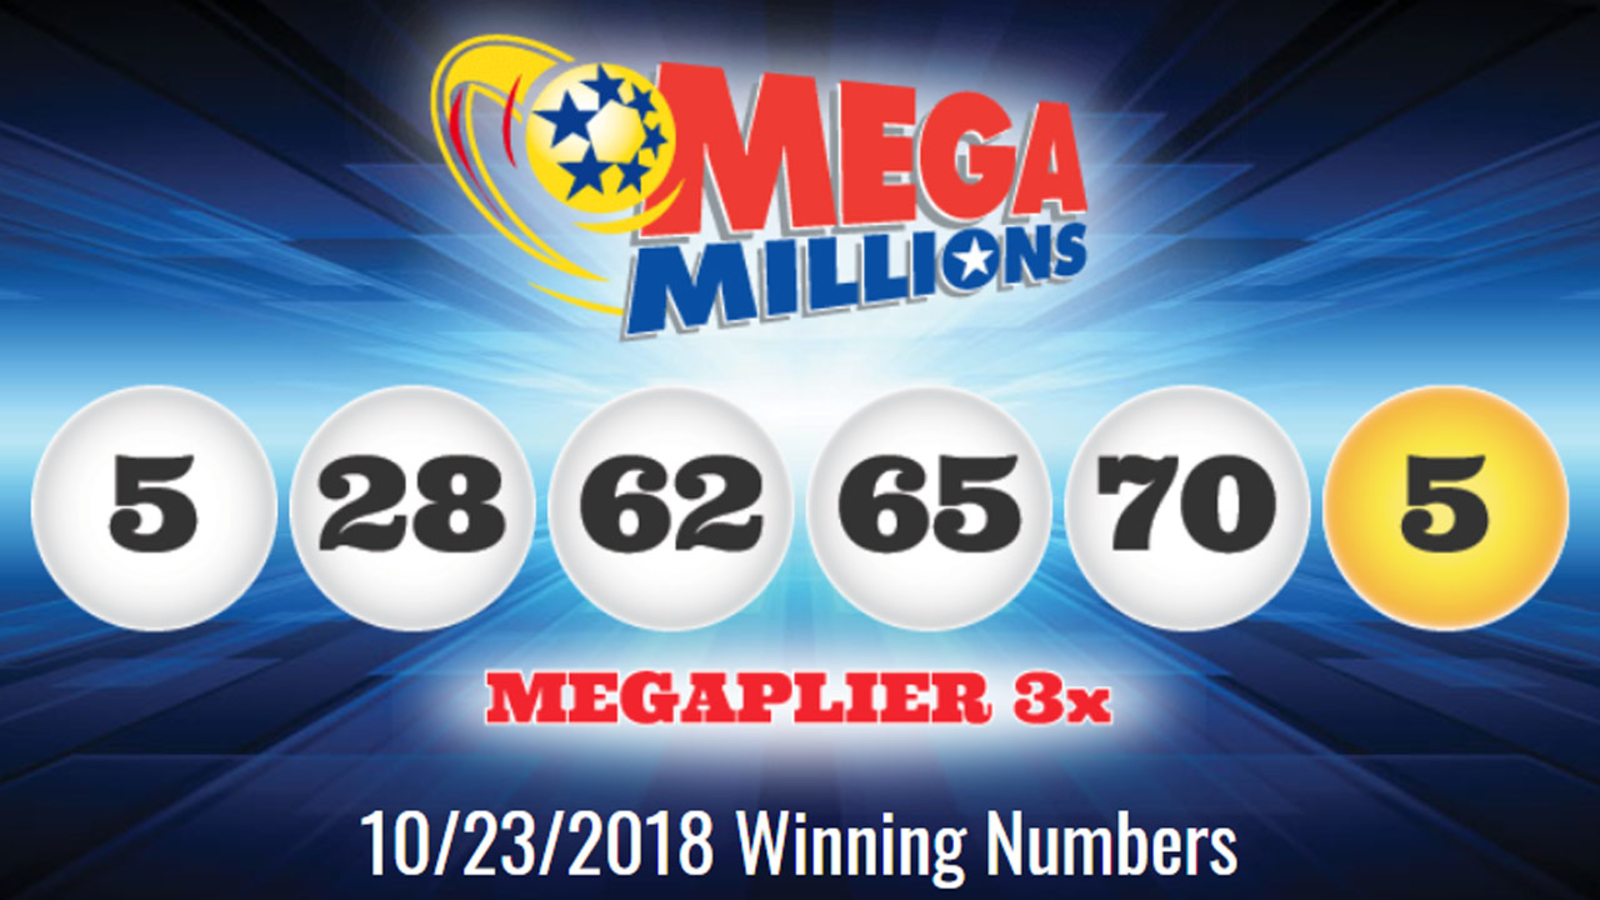 Mega Millions Results 1 Winning Mega Millions Ticket Sold In South